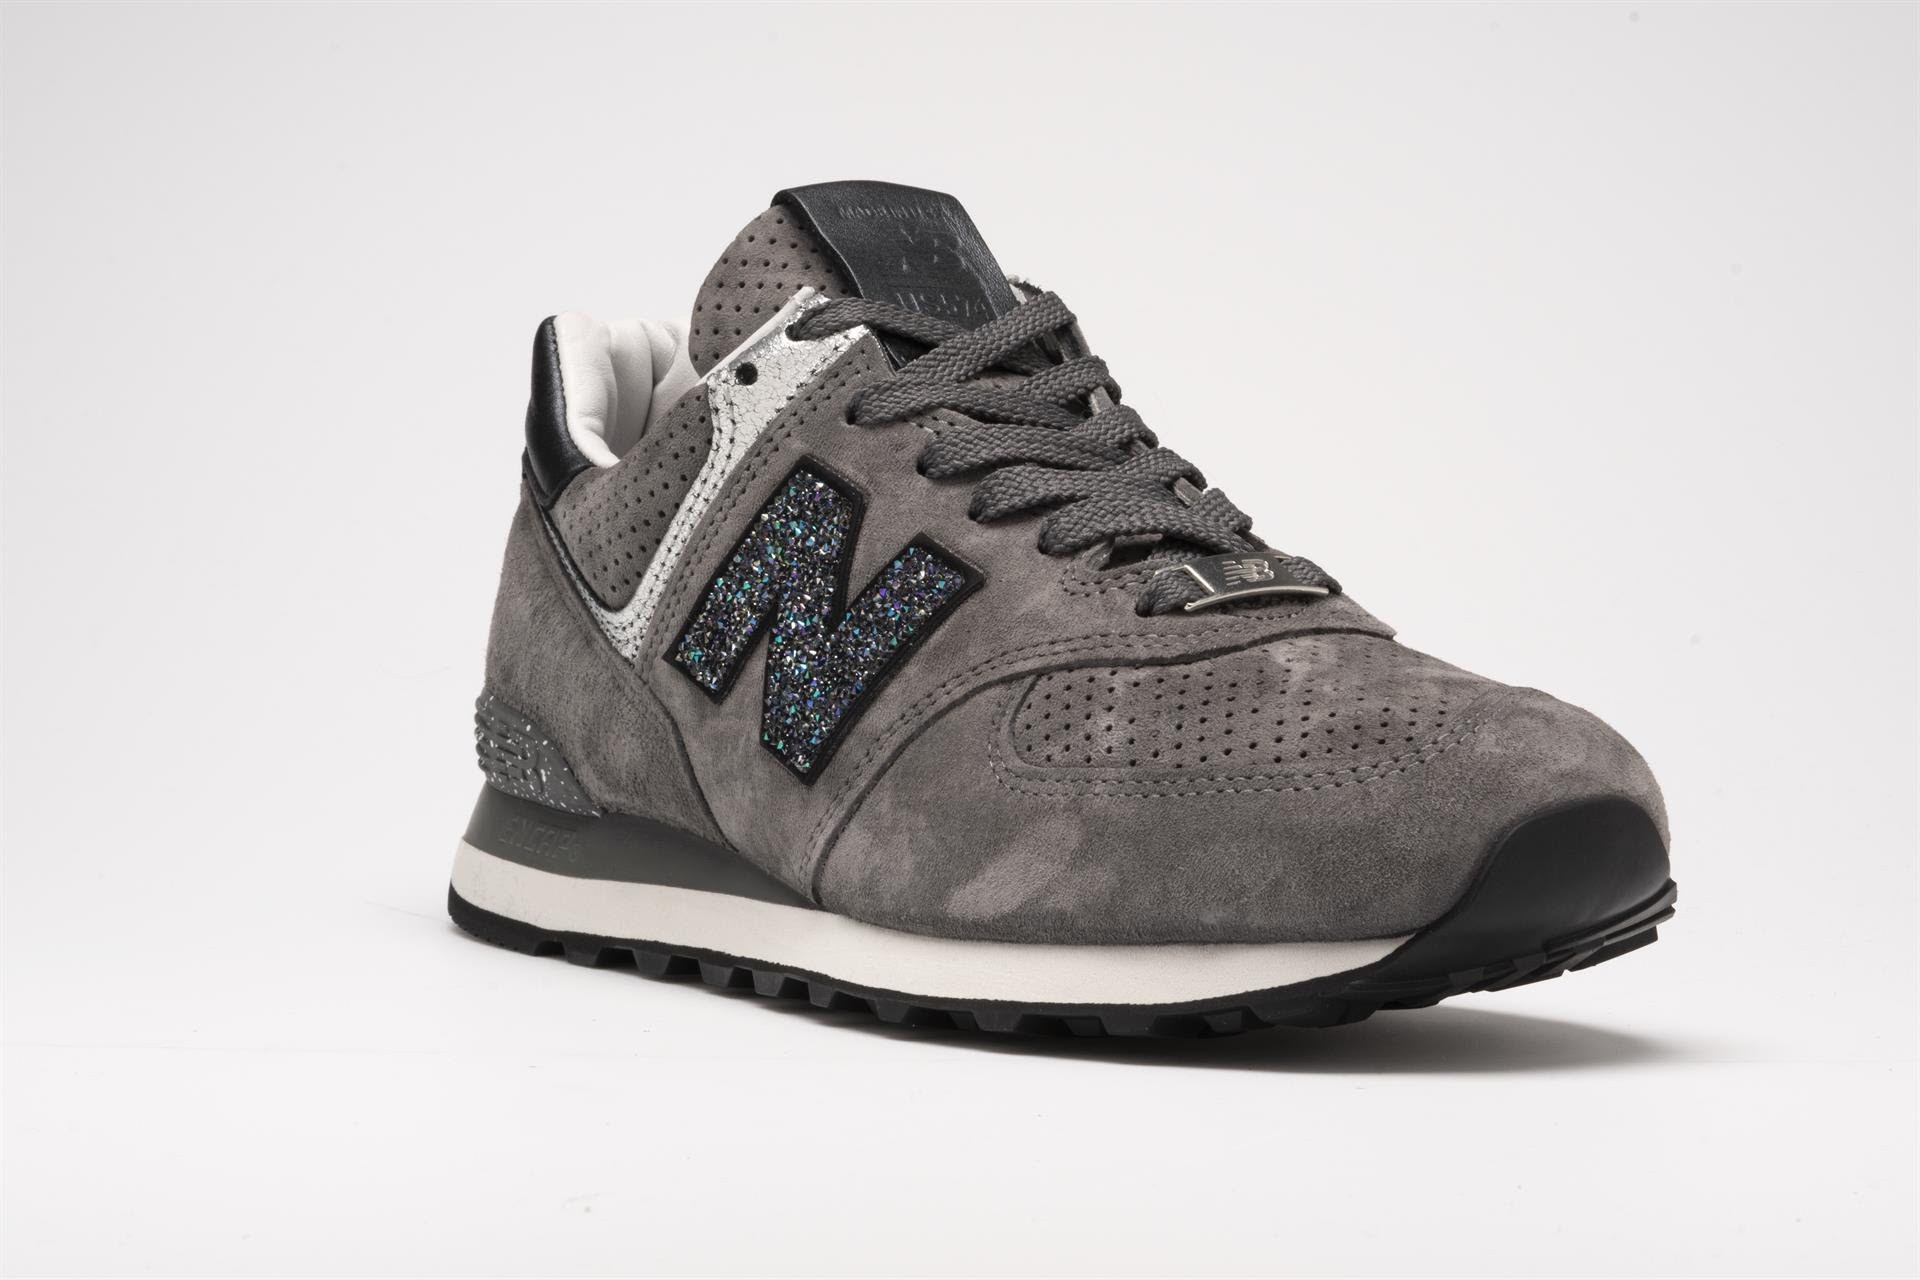 quality design 9be58 f9a17 New Balance Releases Limited NB1 574 with Crystals from ...